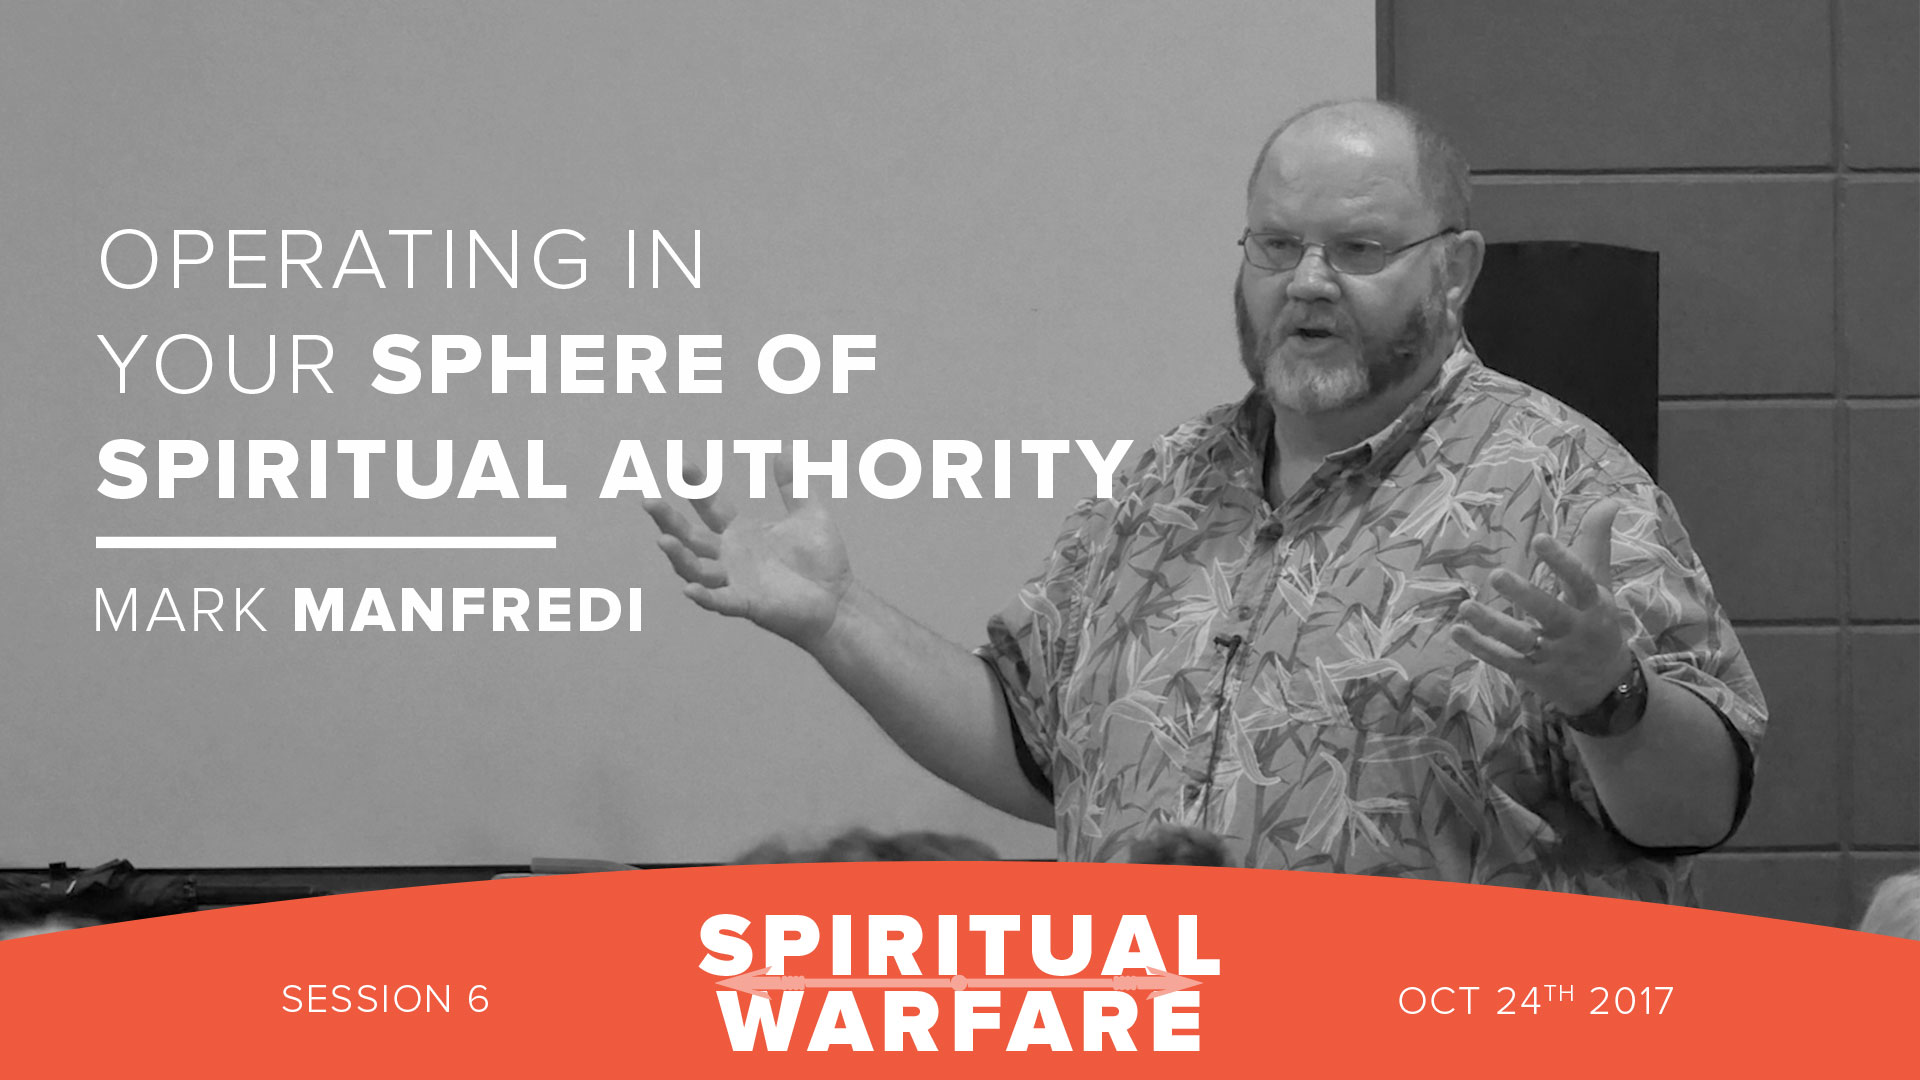 Operating in your sphere of spiritual authority